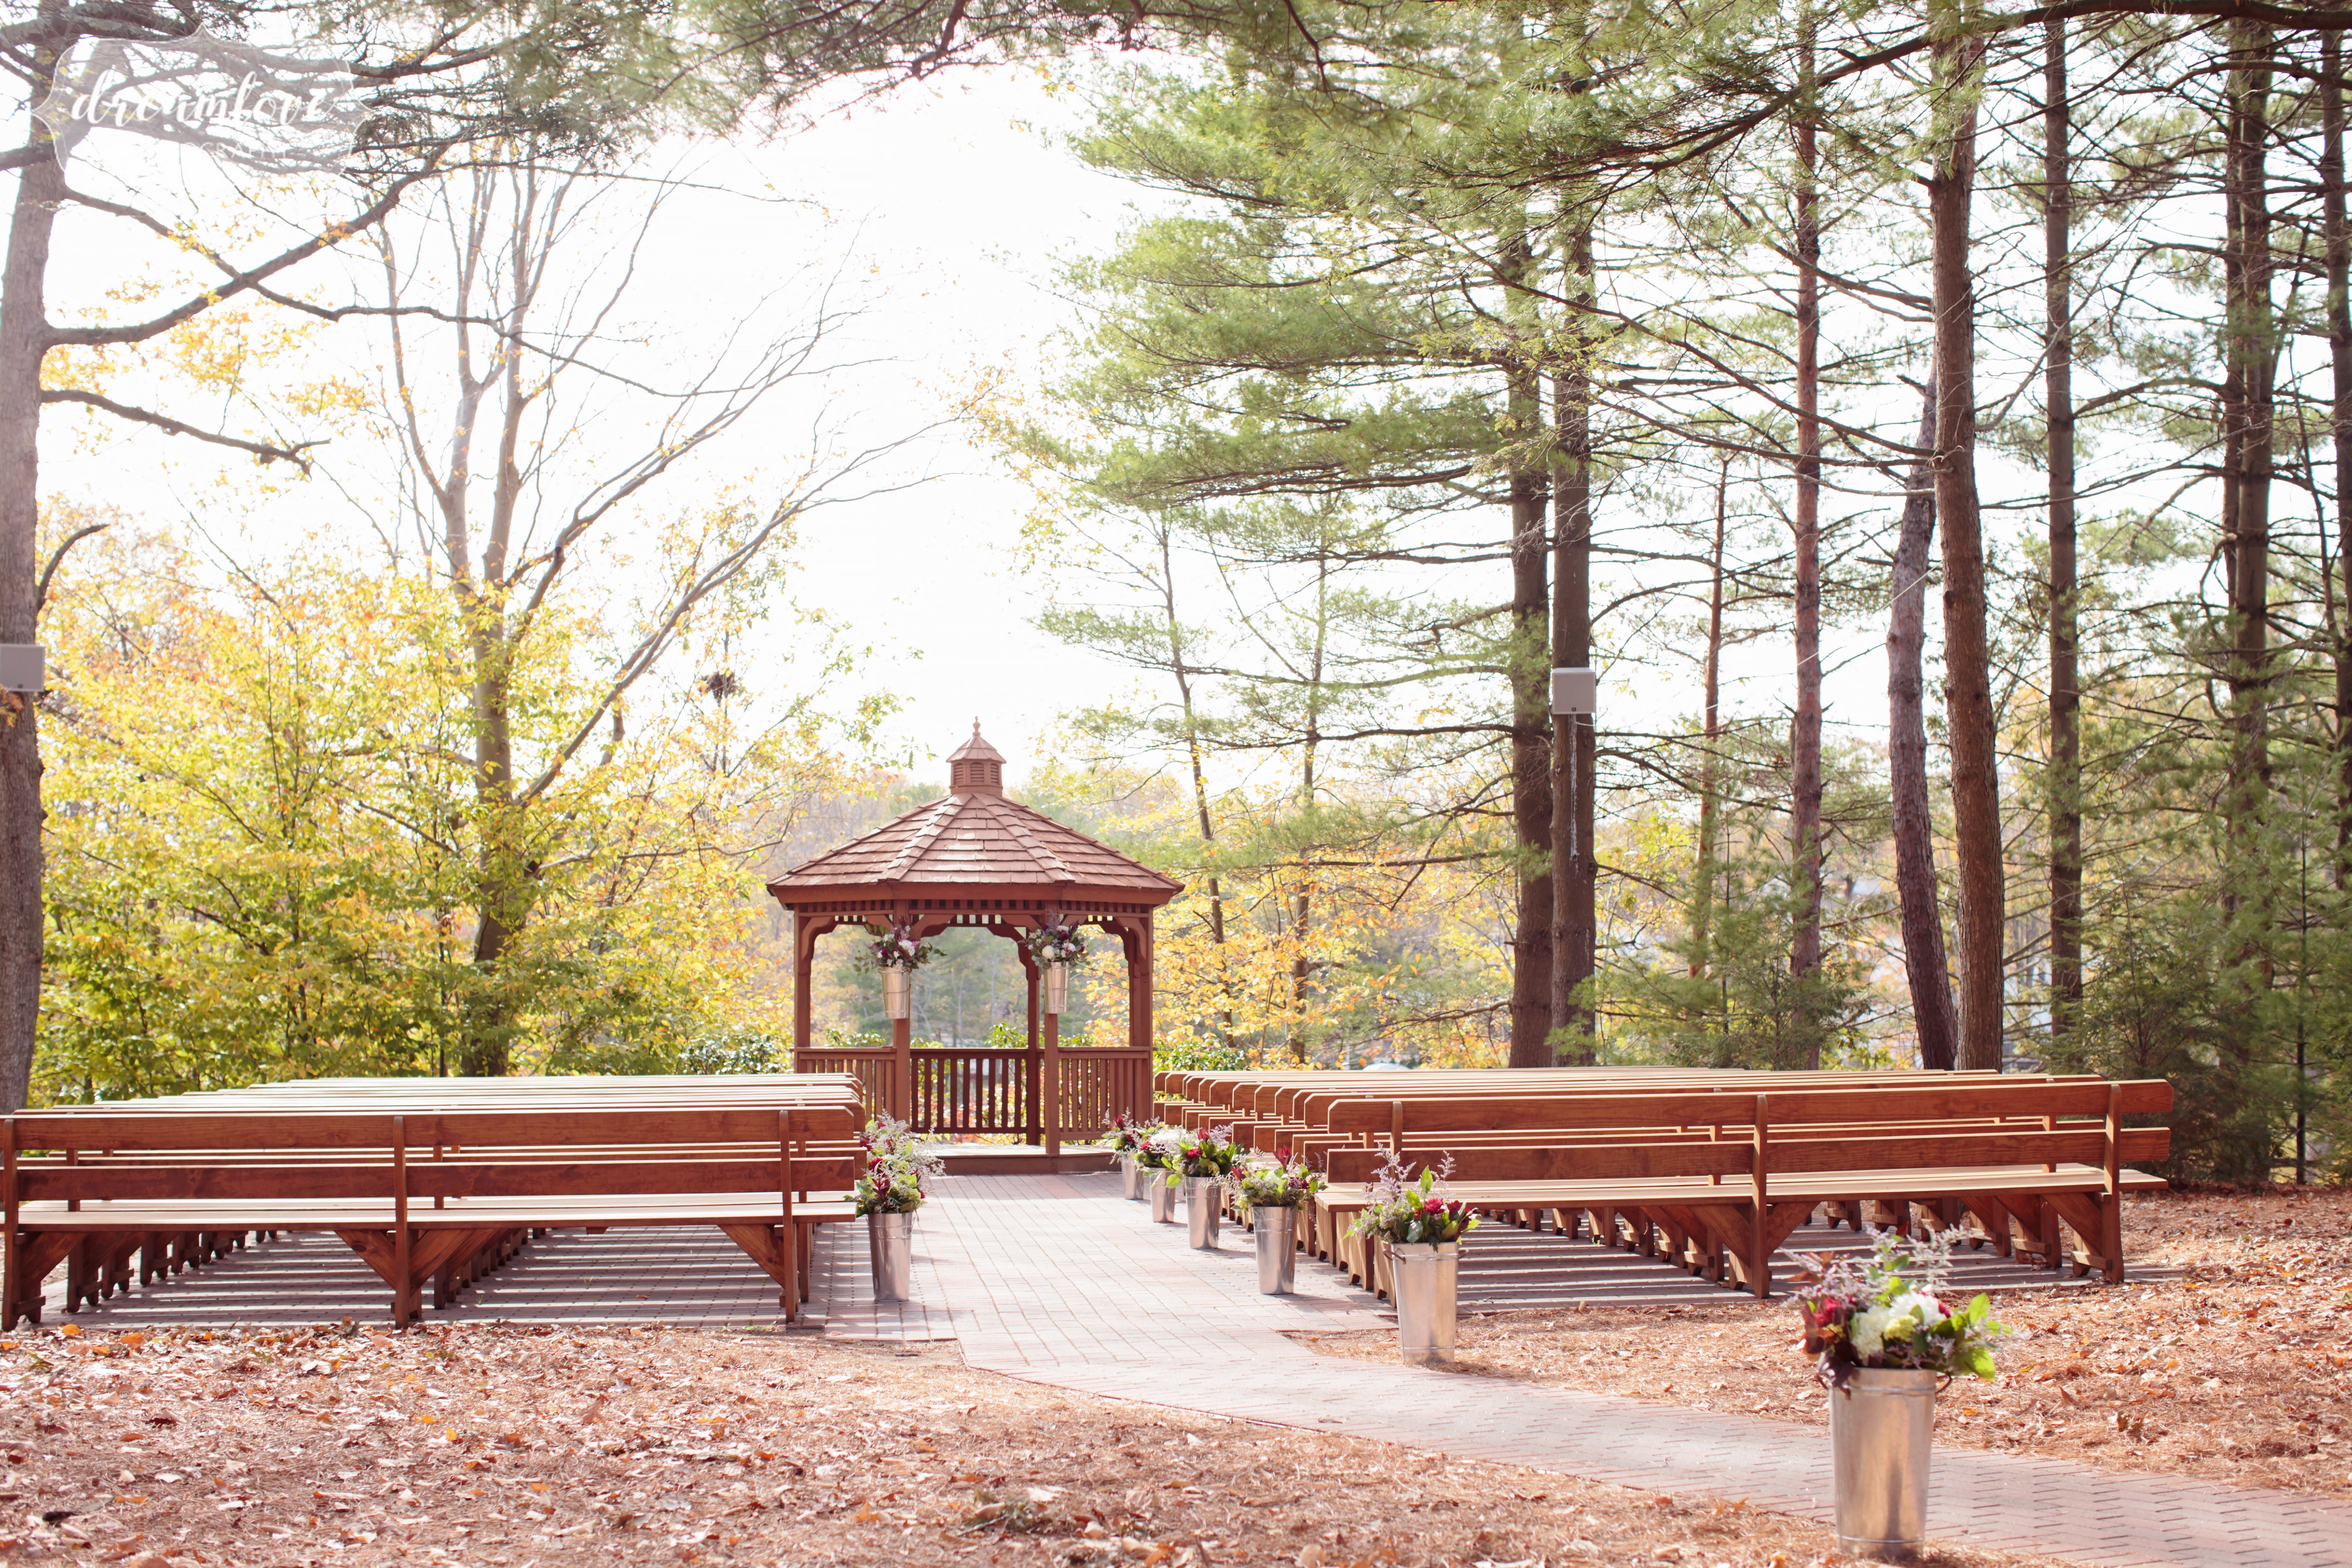 The gazebo sits next to the lake at the Pavilion on Crystal Lake wedding venue in Middletown, CT.